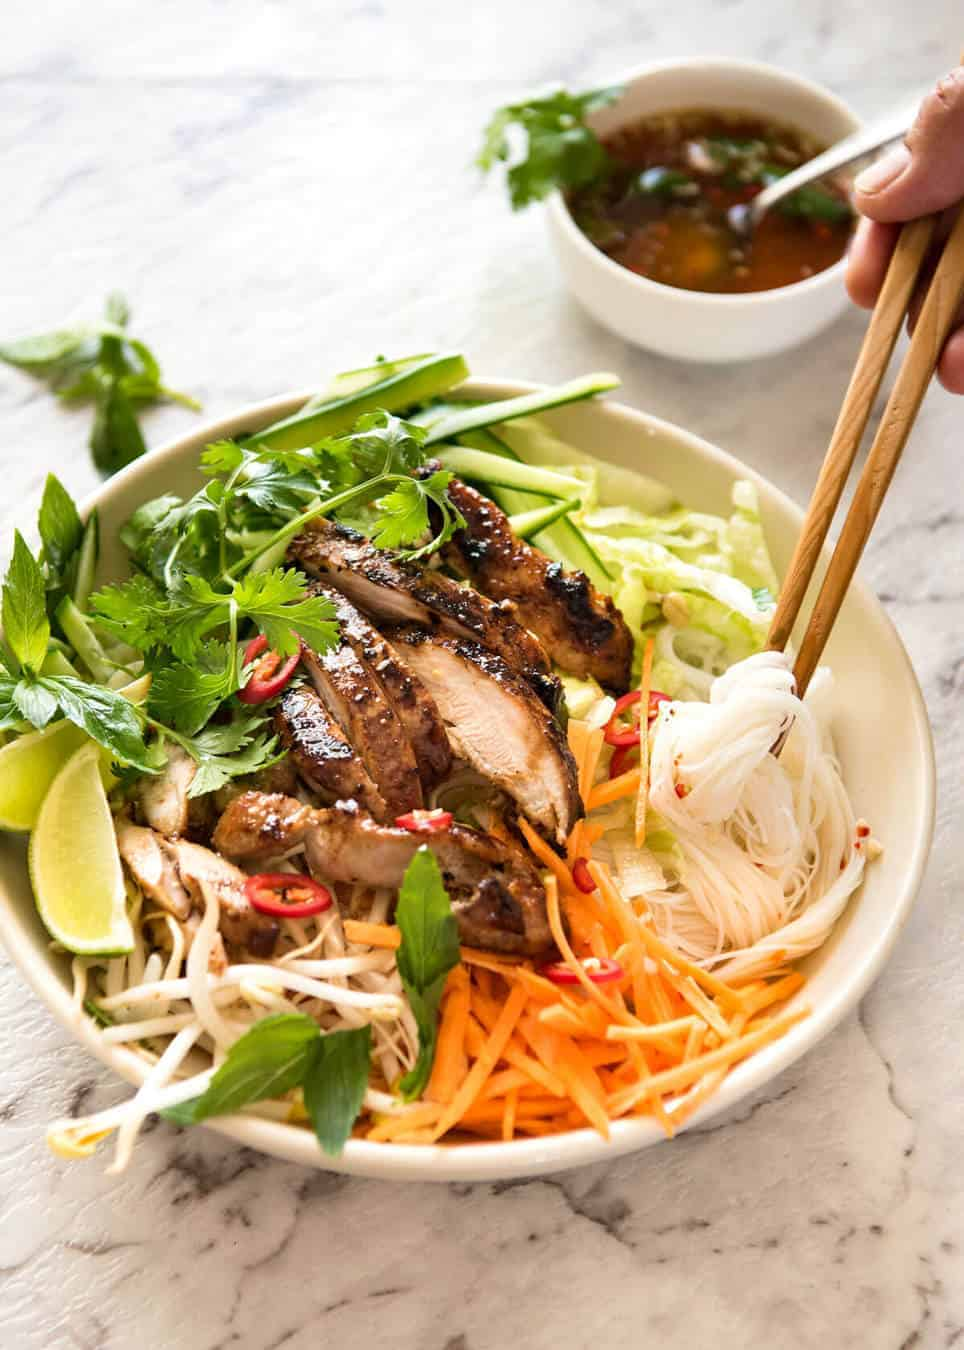 Vietnamese lemongrass chicken recipe